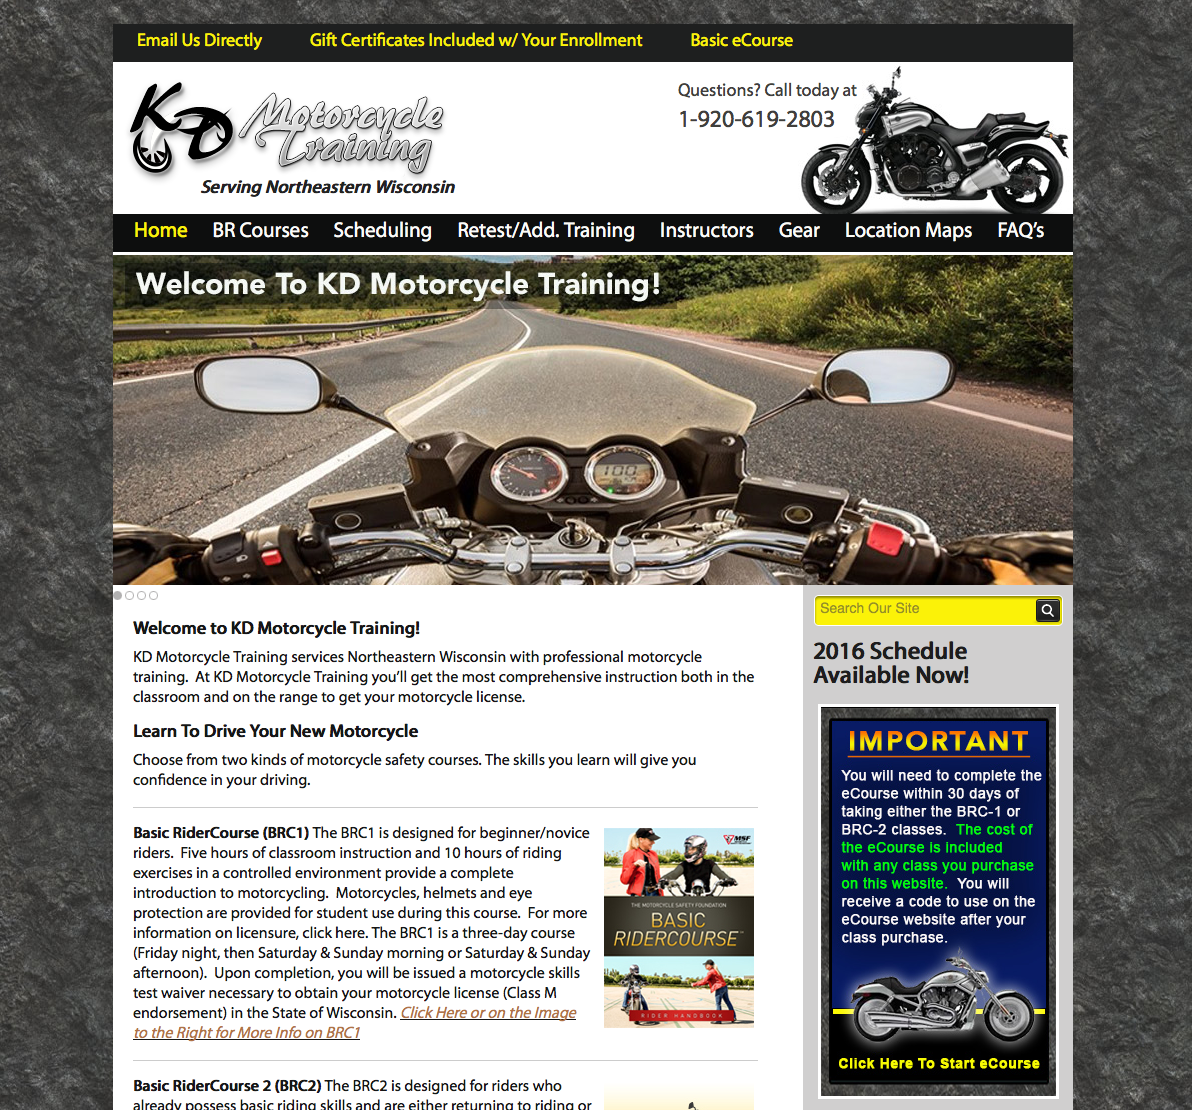 Kd Motorcycle Training Northeastern Wisconsin Fox